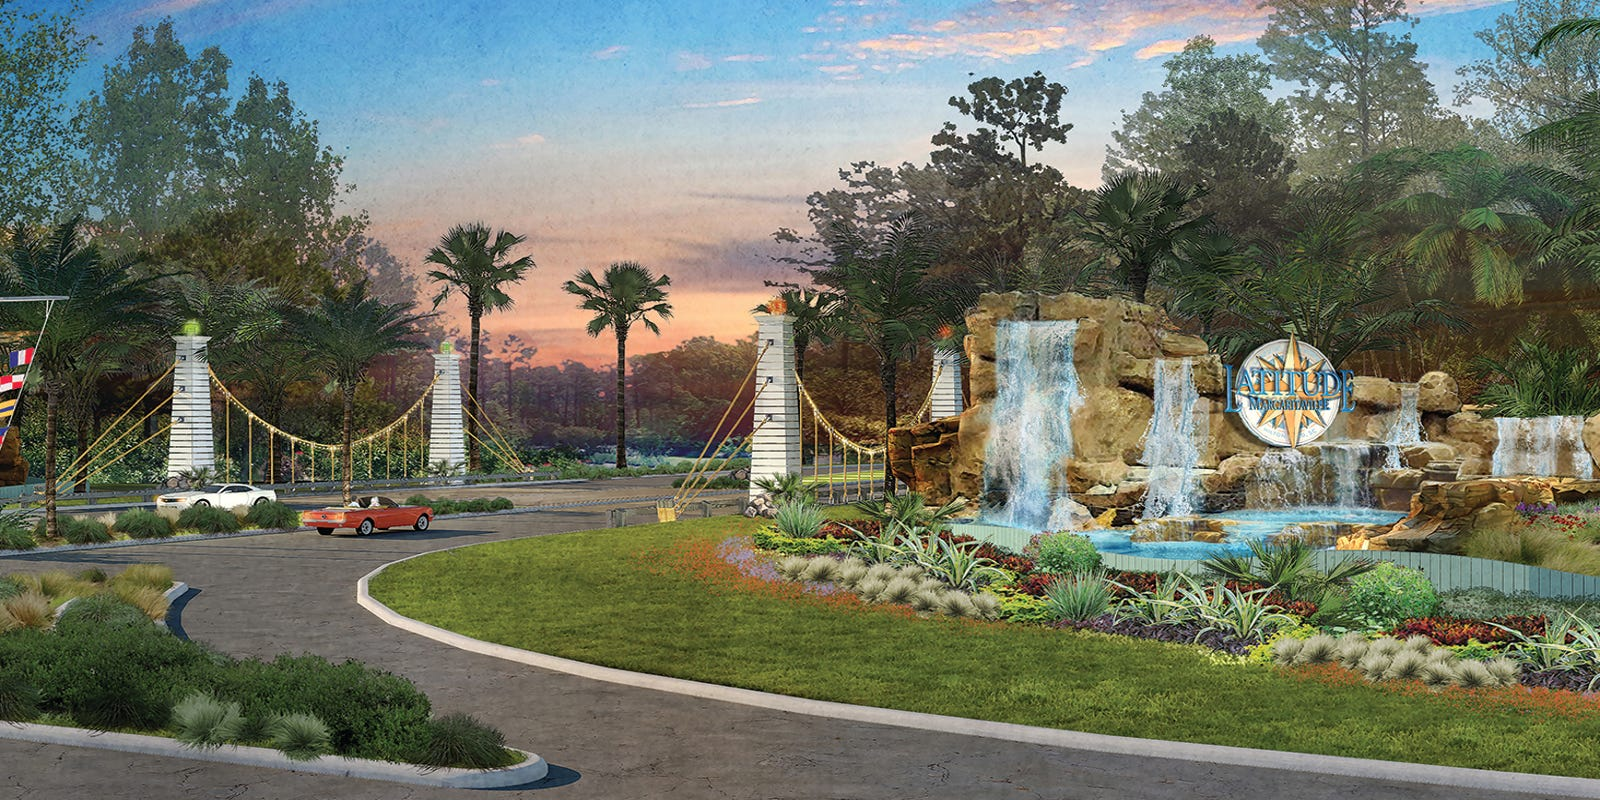 LAUDE MARGARITAVILLE Hilton Head to unveil first model homes on plans for gates, plans for apartment complexes, plans for garages, plans for construction, plans for pool, plans for furniture,